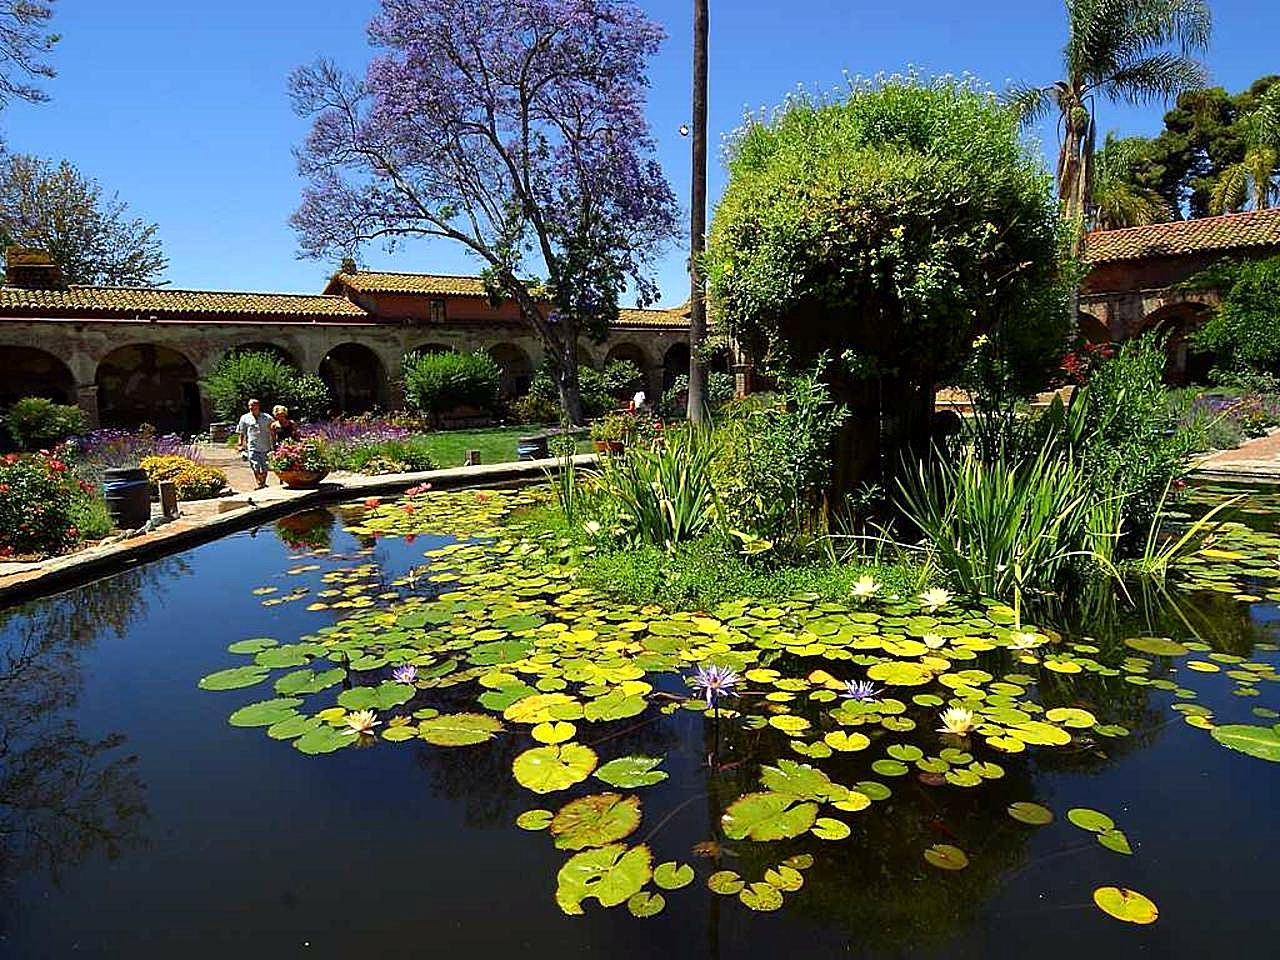 Free picture lilly lotus flower pond lilly lotus flower pond izmirmasajfo